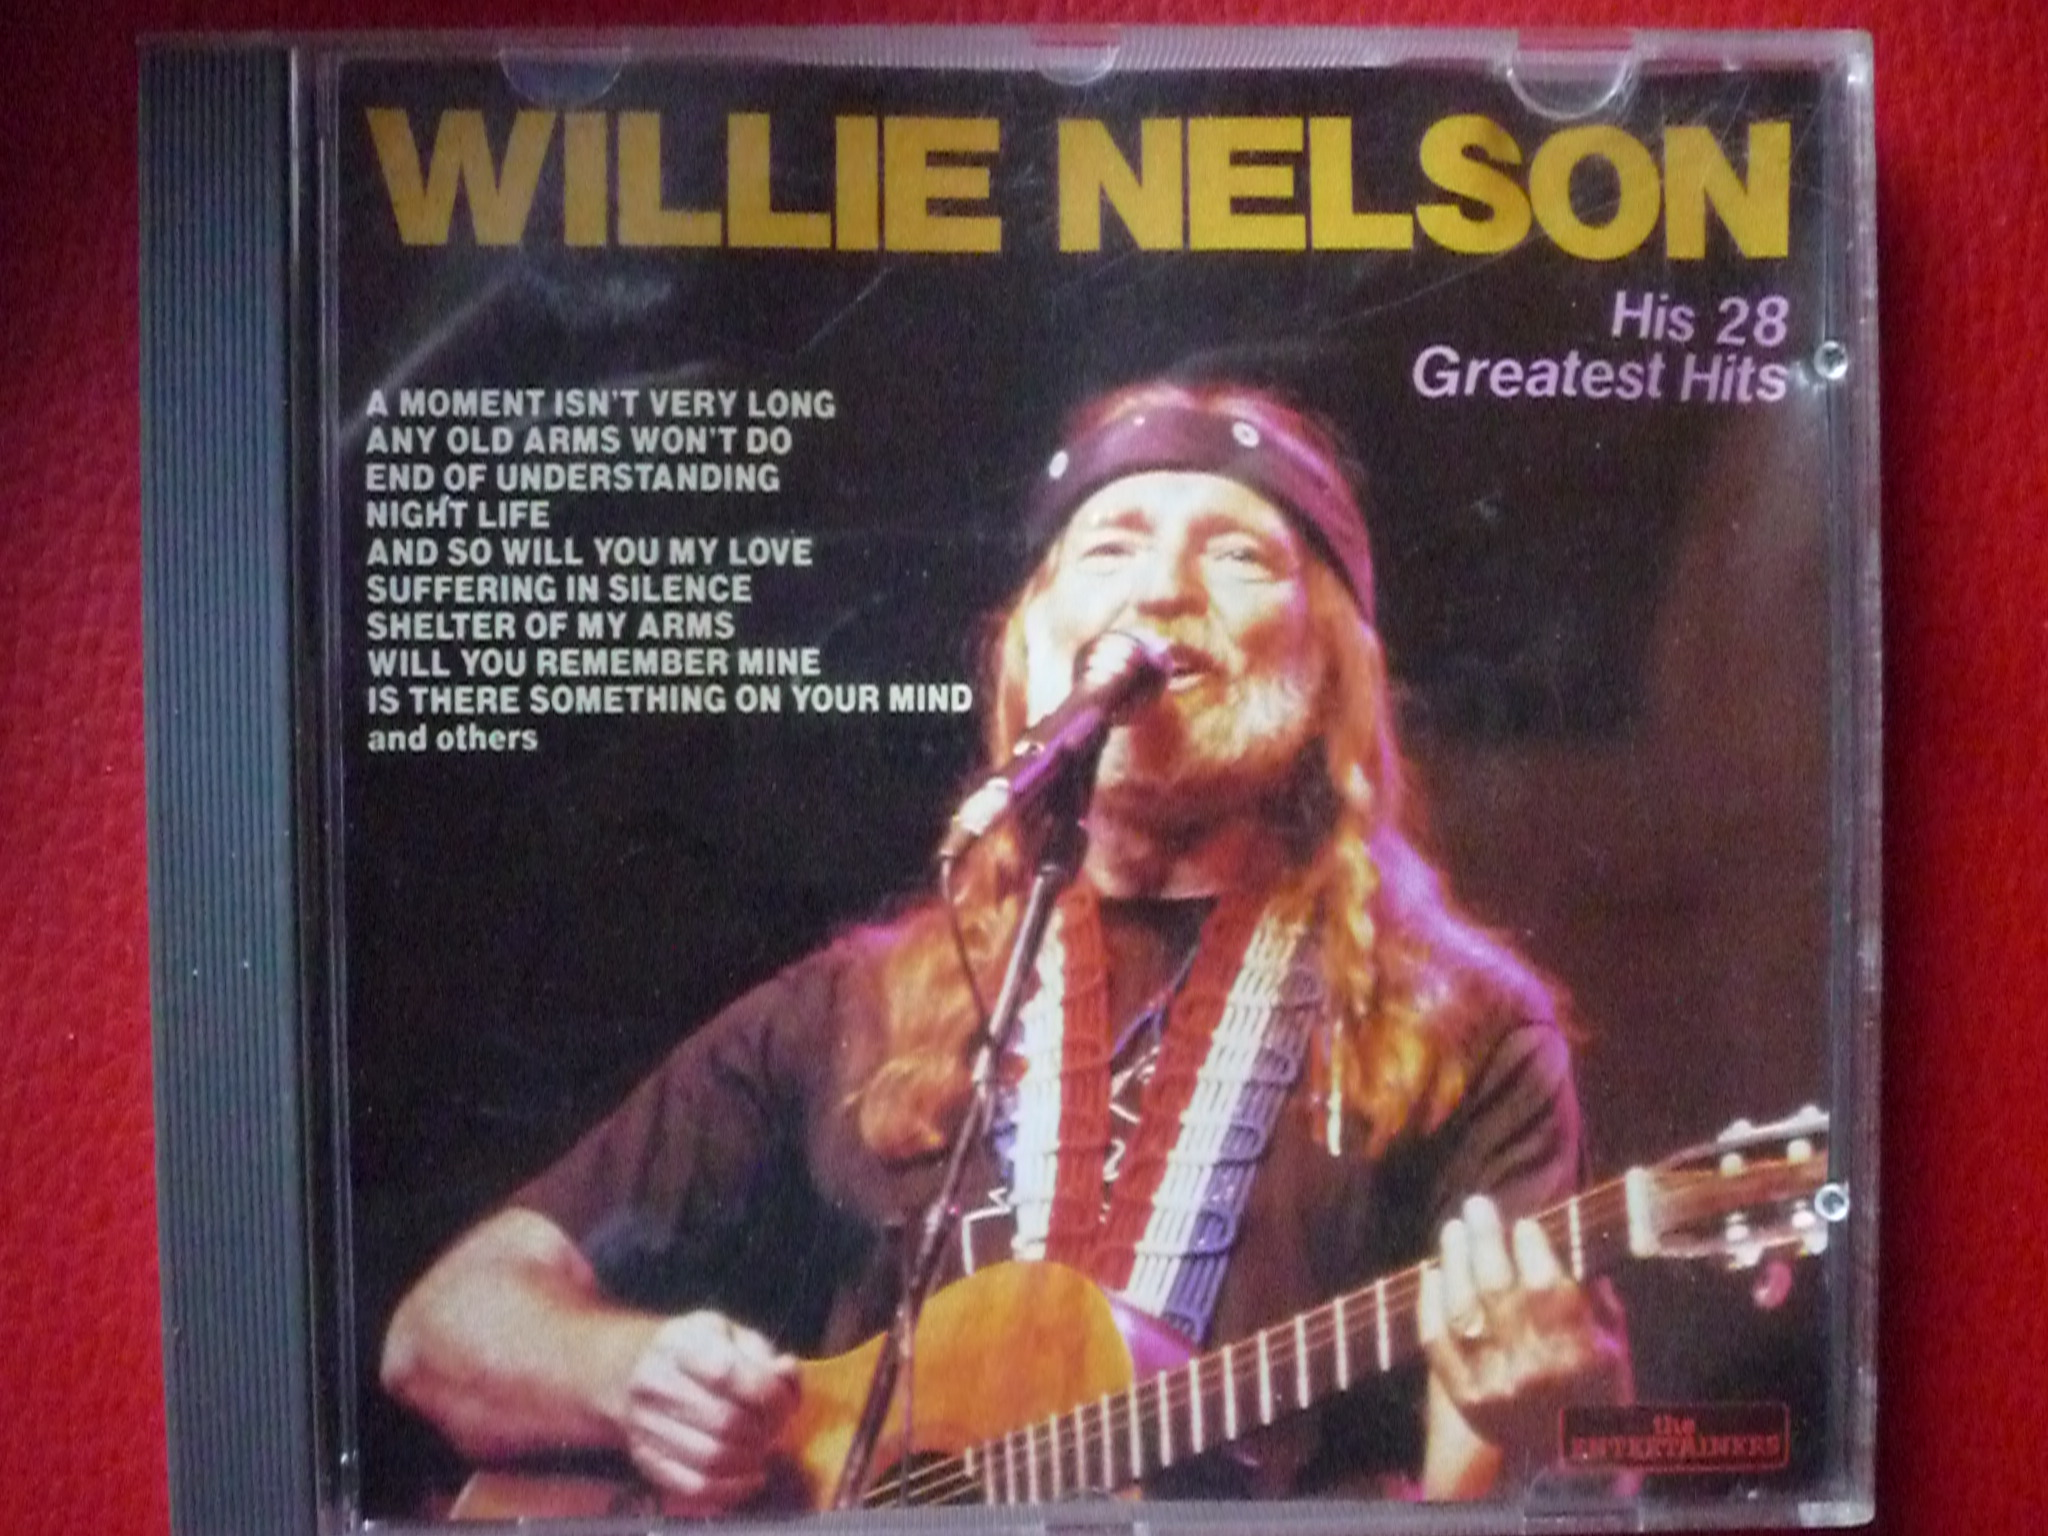 WILLIE NELSON HIT 28 GREATEST HITS CD